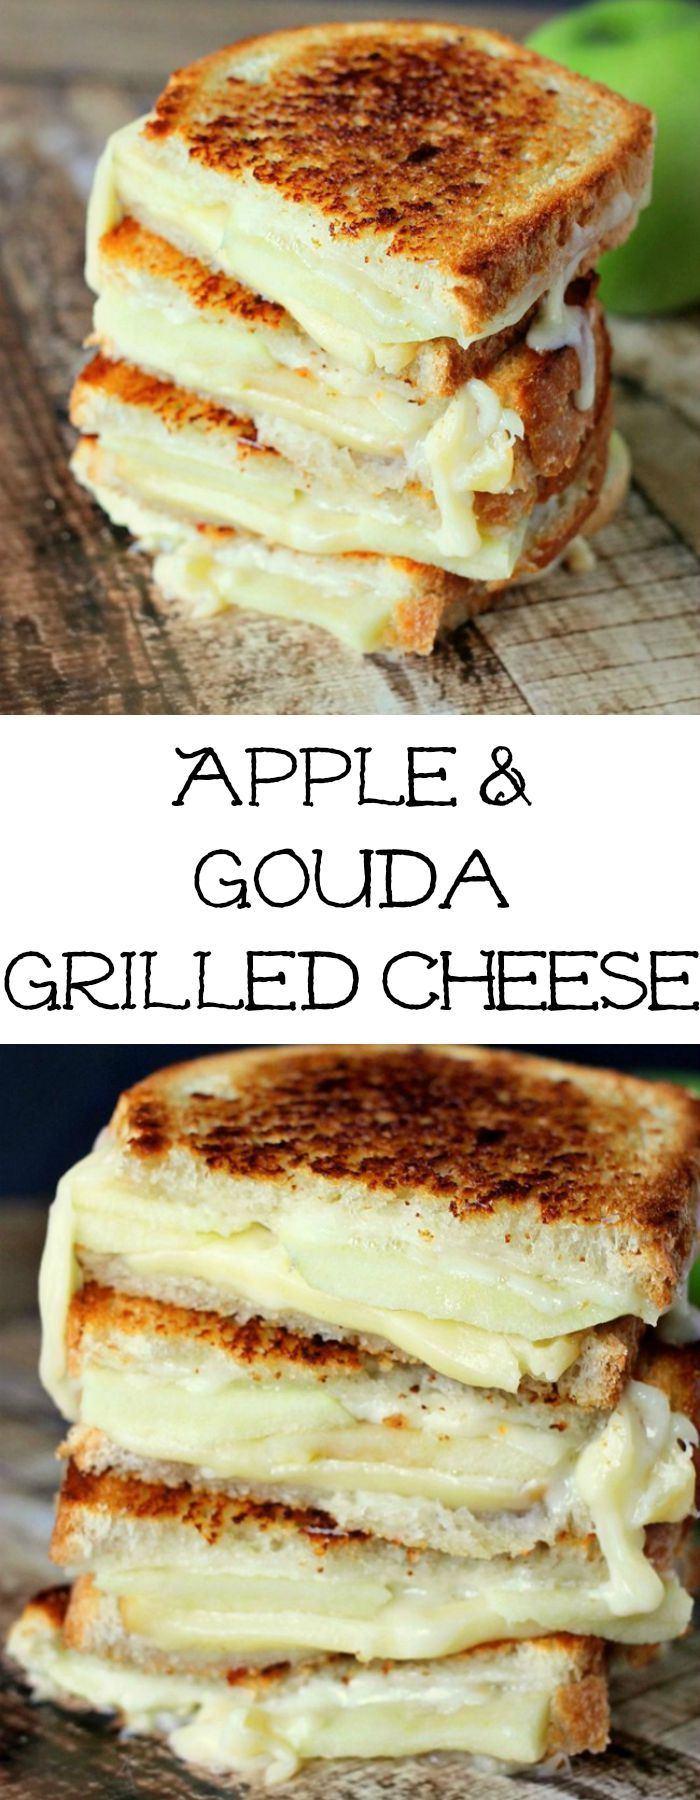 Apple & Gouda Grilled Cheese is perfect for fall and those granny smith apples! Savory and delicious!""